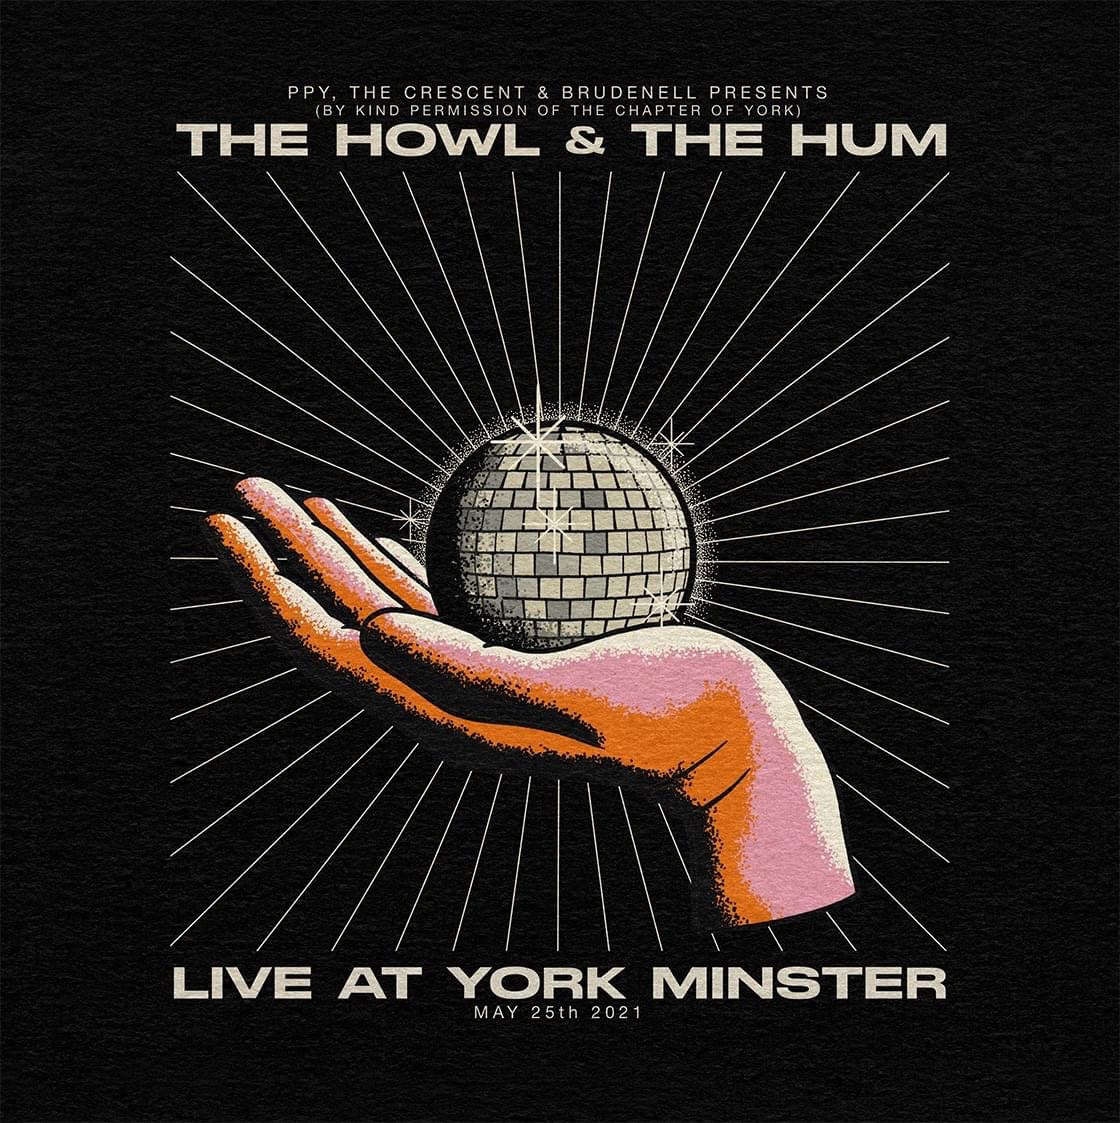 NEWS: The Howl & The Hum – Live At York Minster (Live Stream)